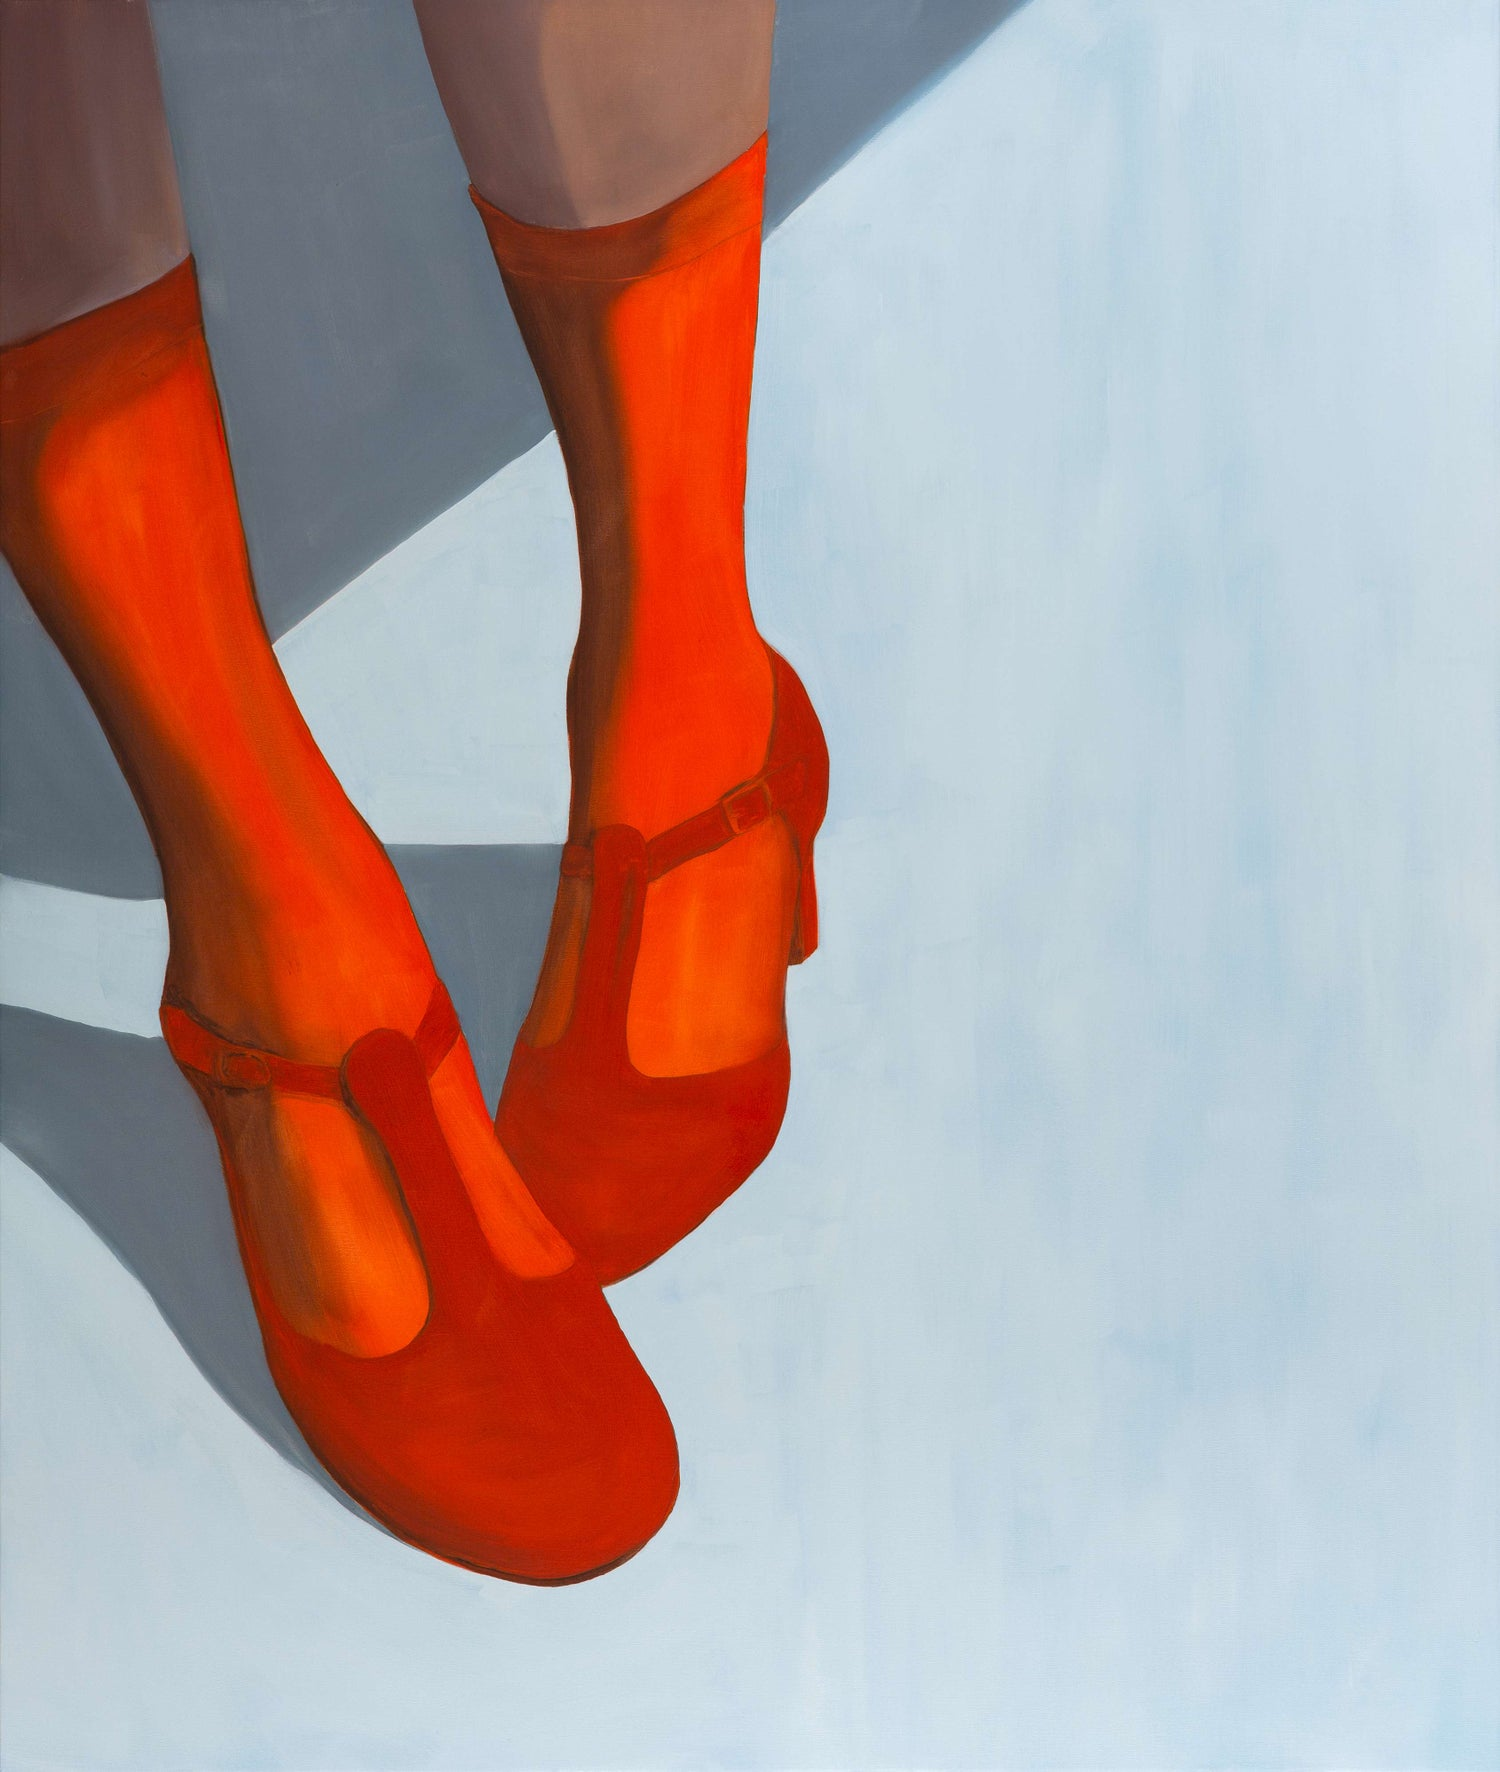 Image of Red dancing shoes